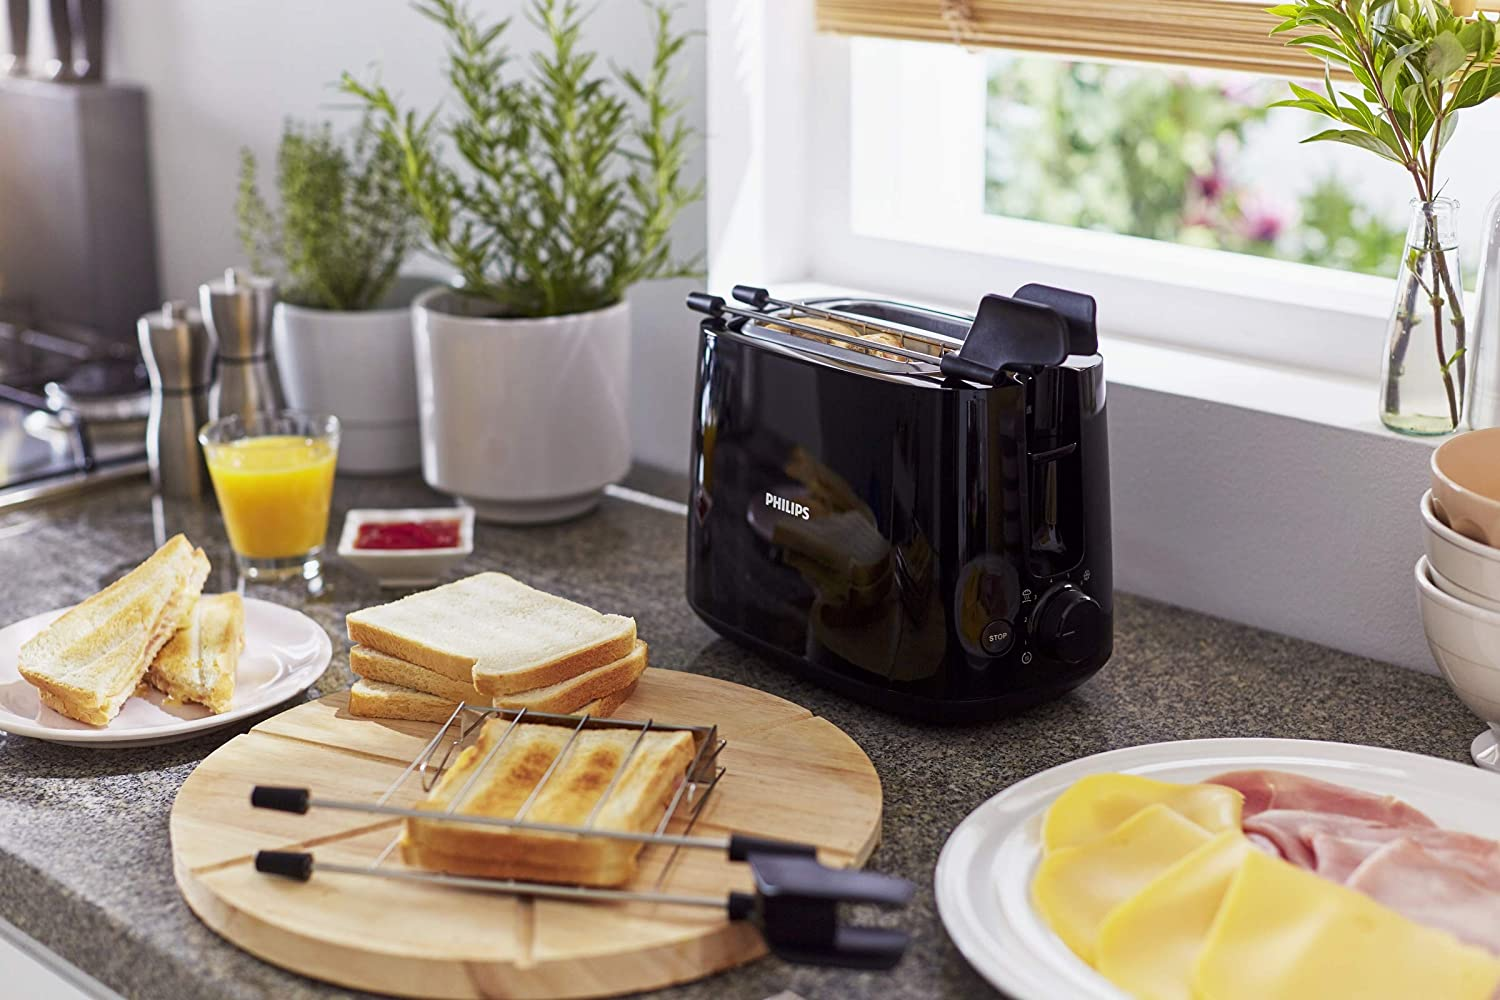 The Pop-up toaster with toasted breads, chutney and a glass of pineapple juice.